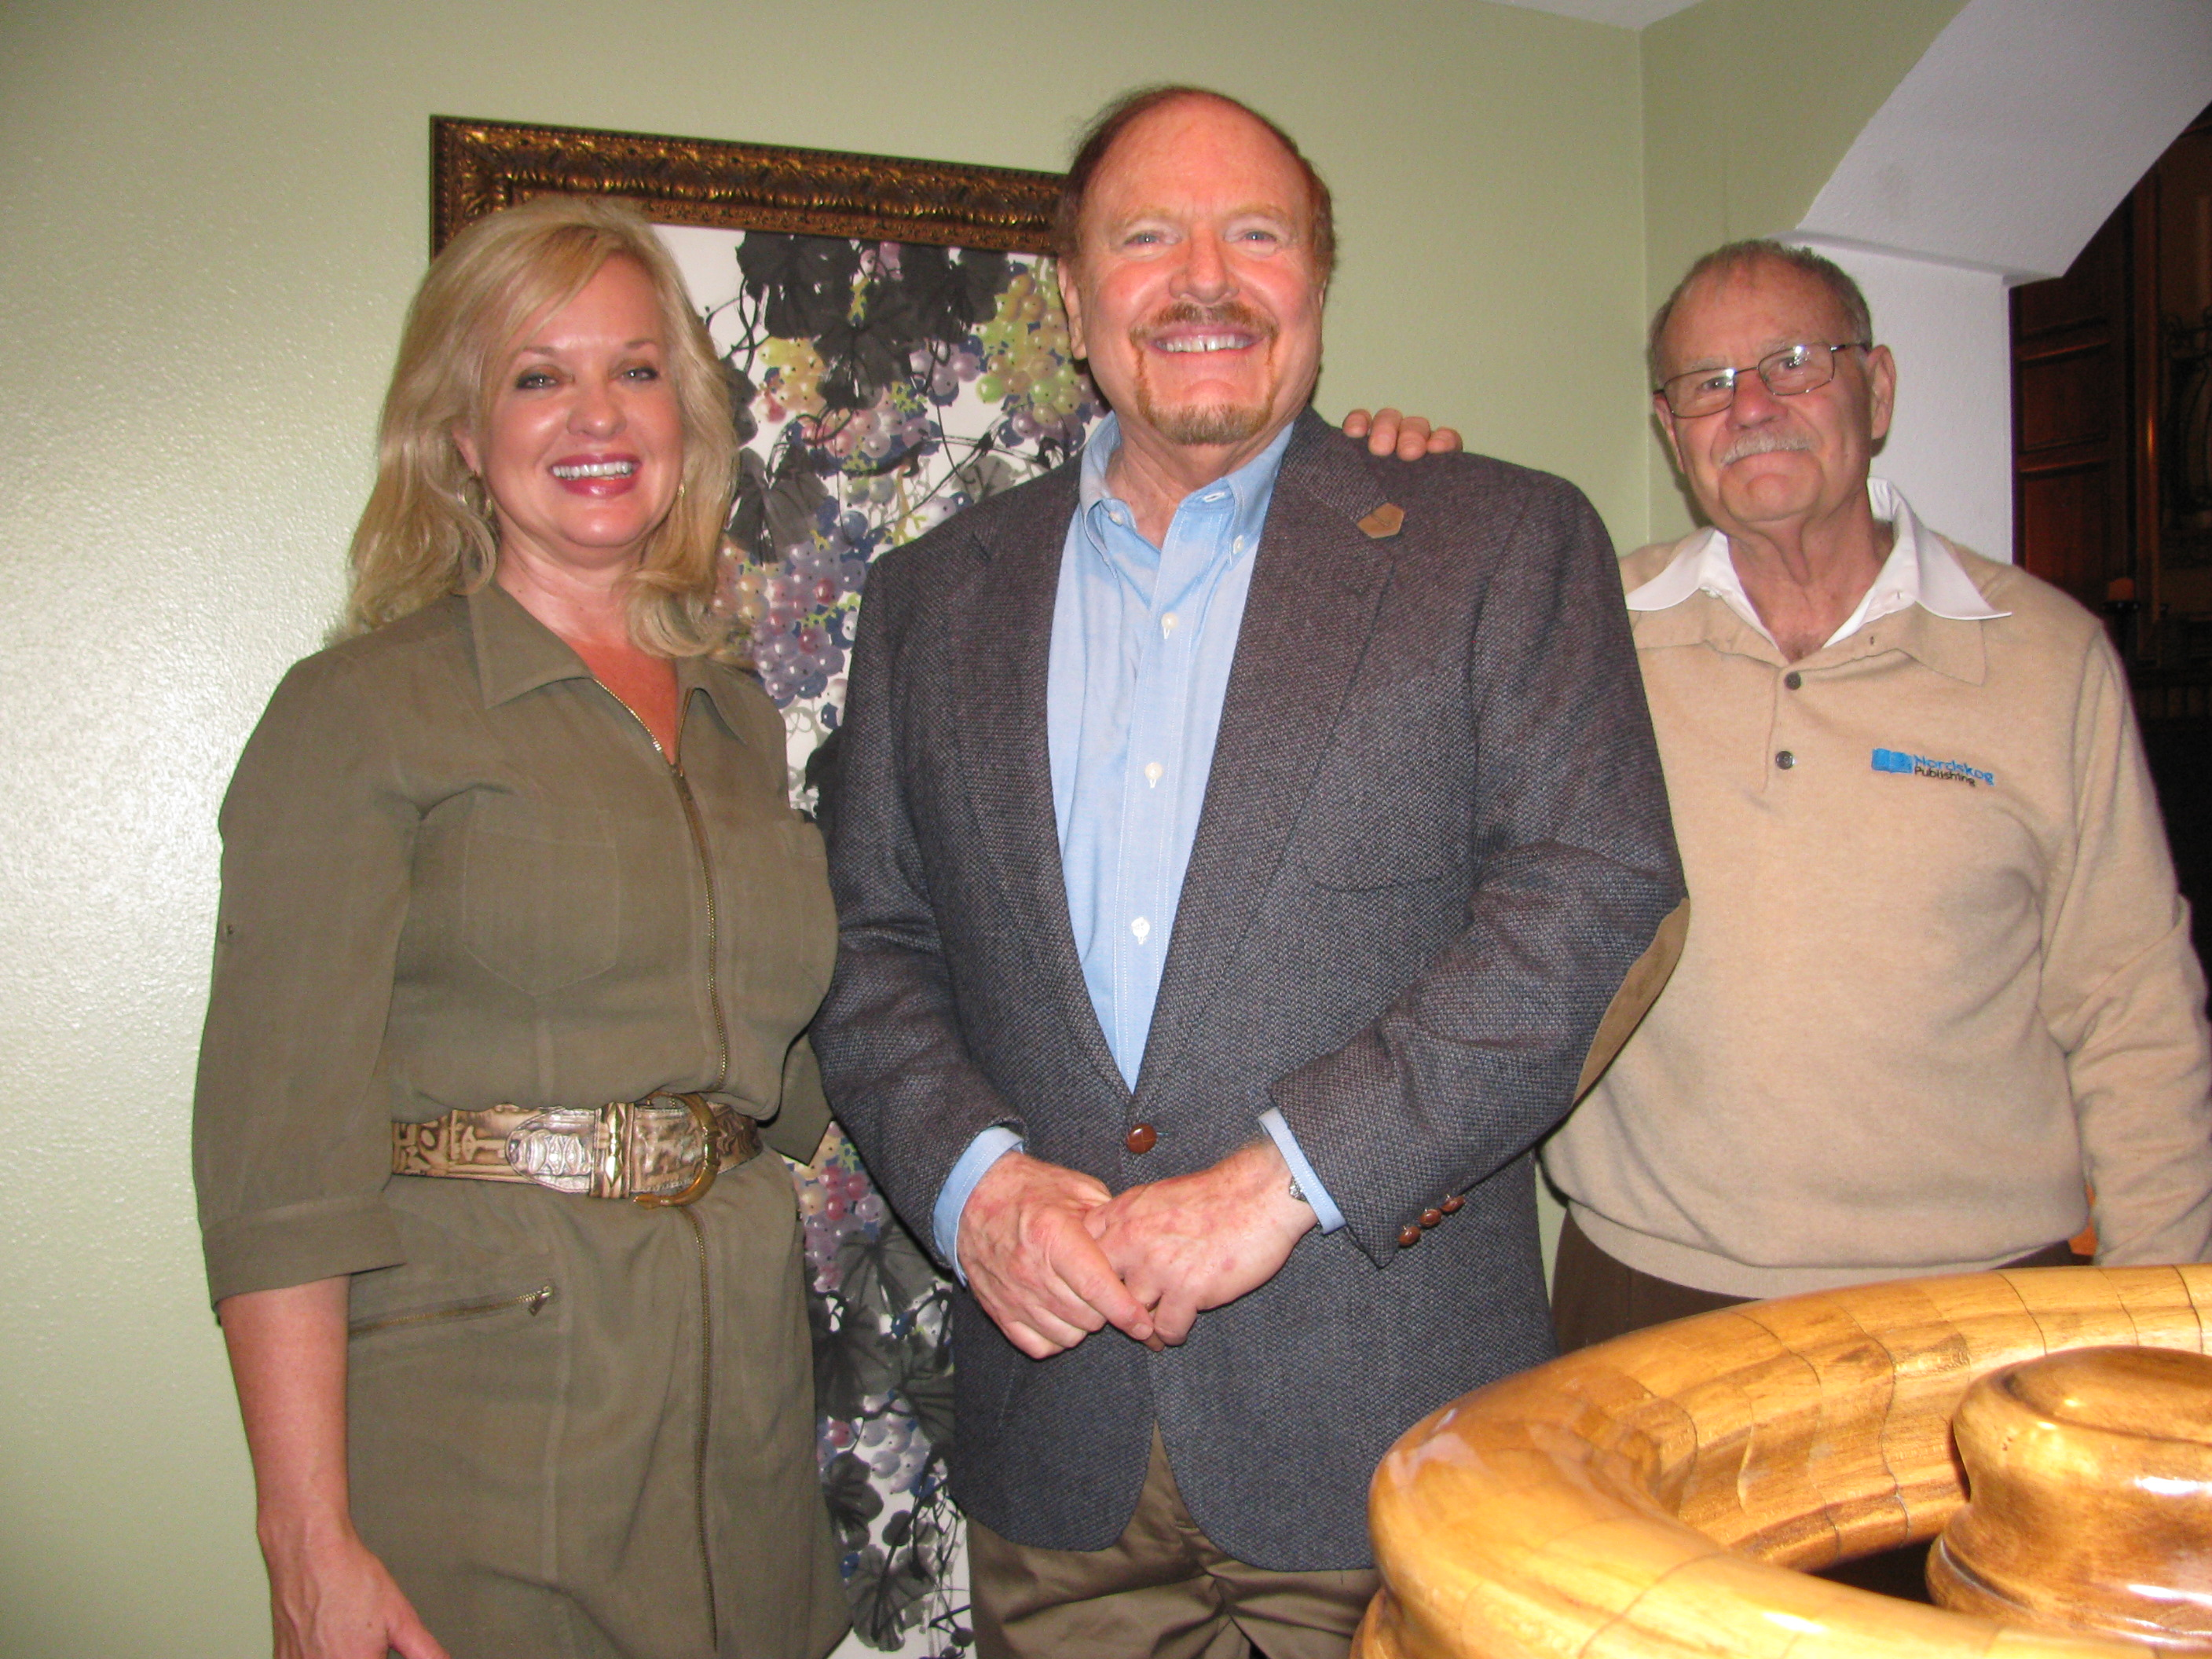 Jerry & Gail with Dr. Marshall Foster